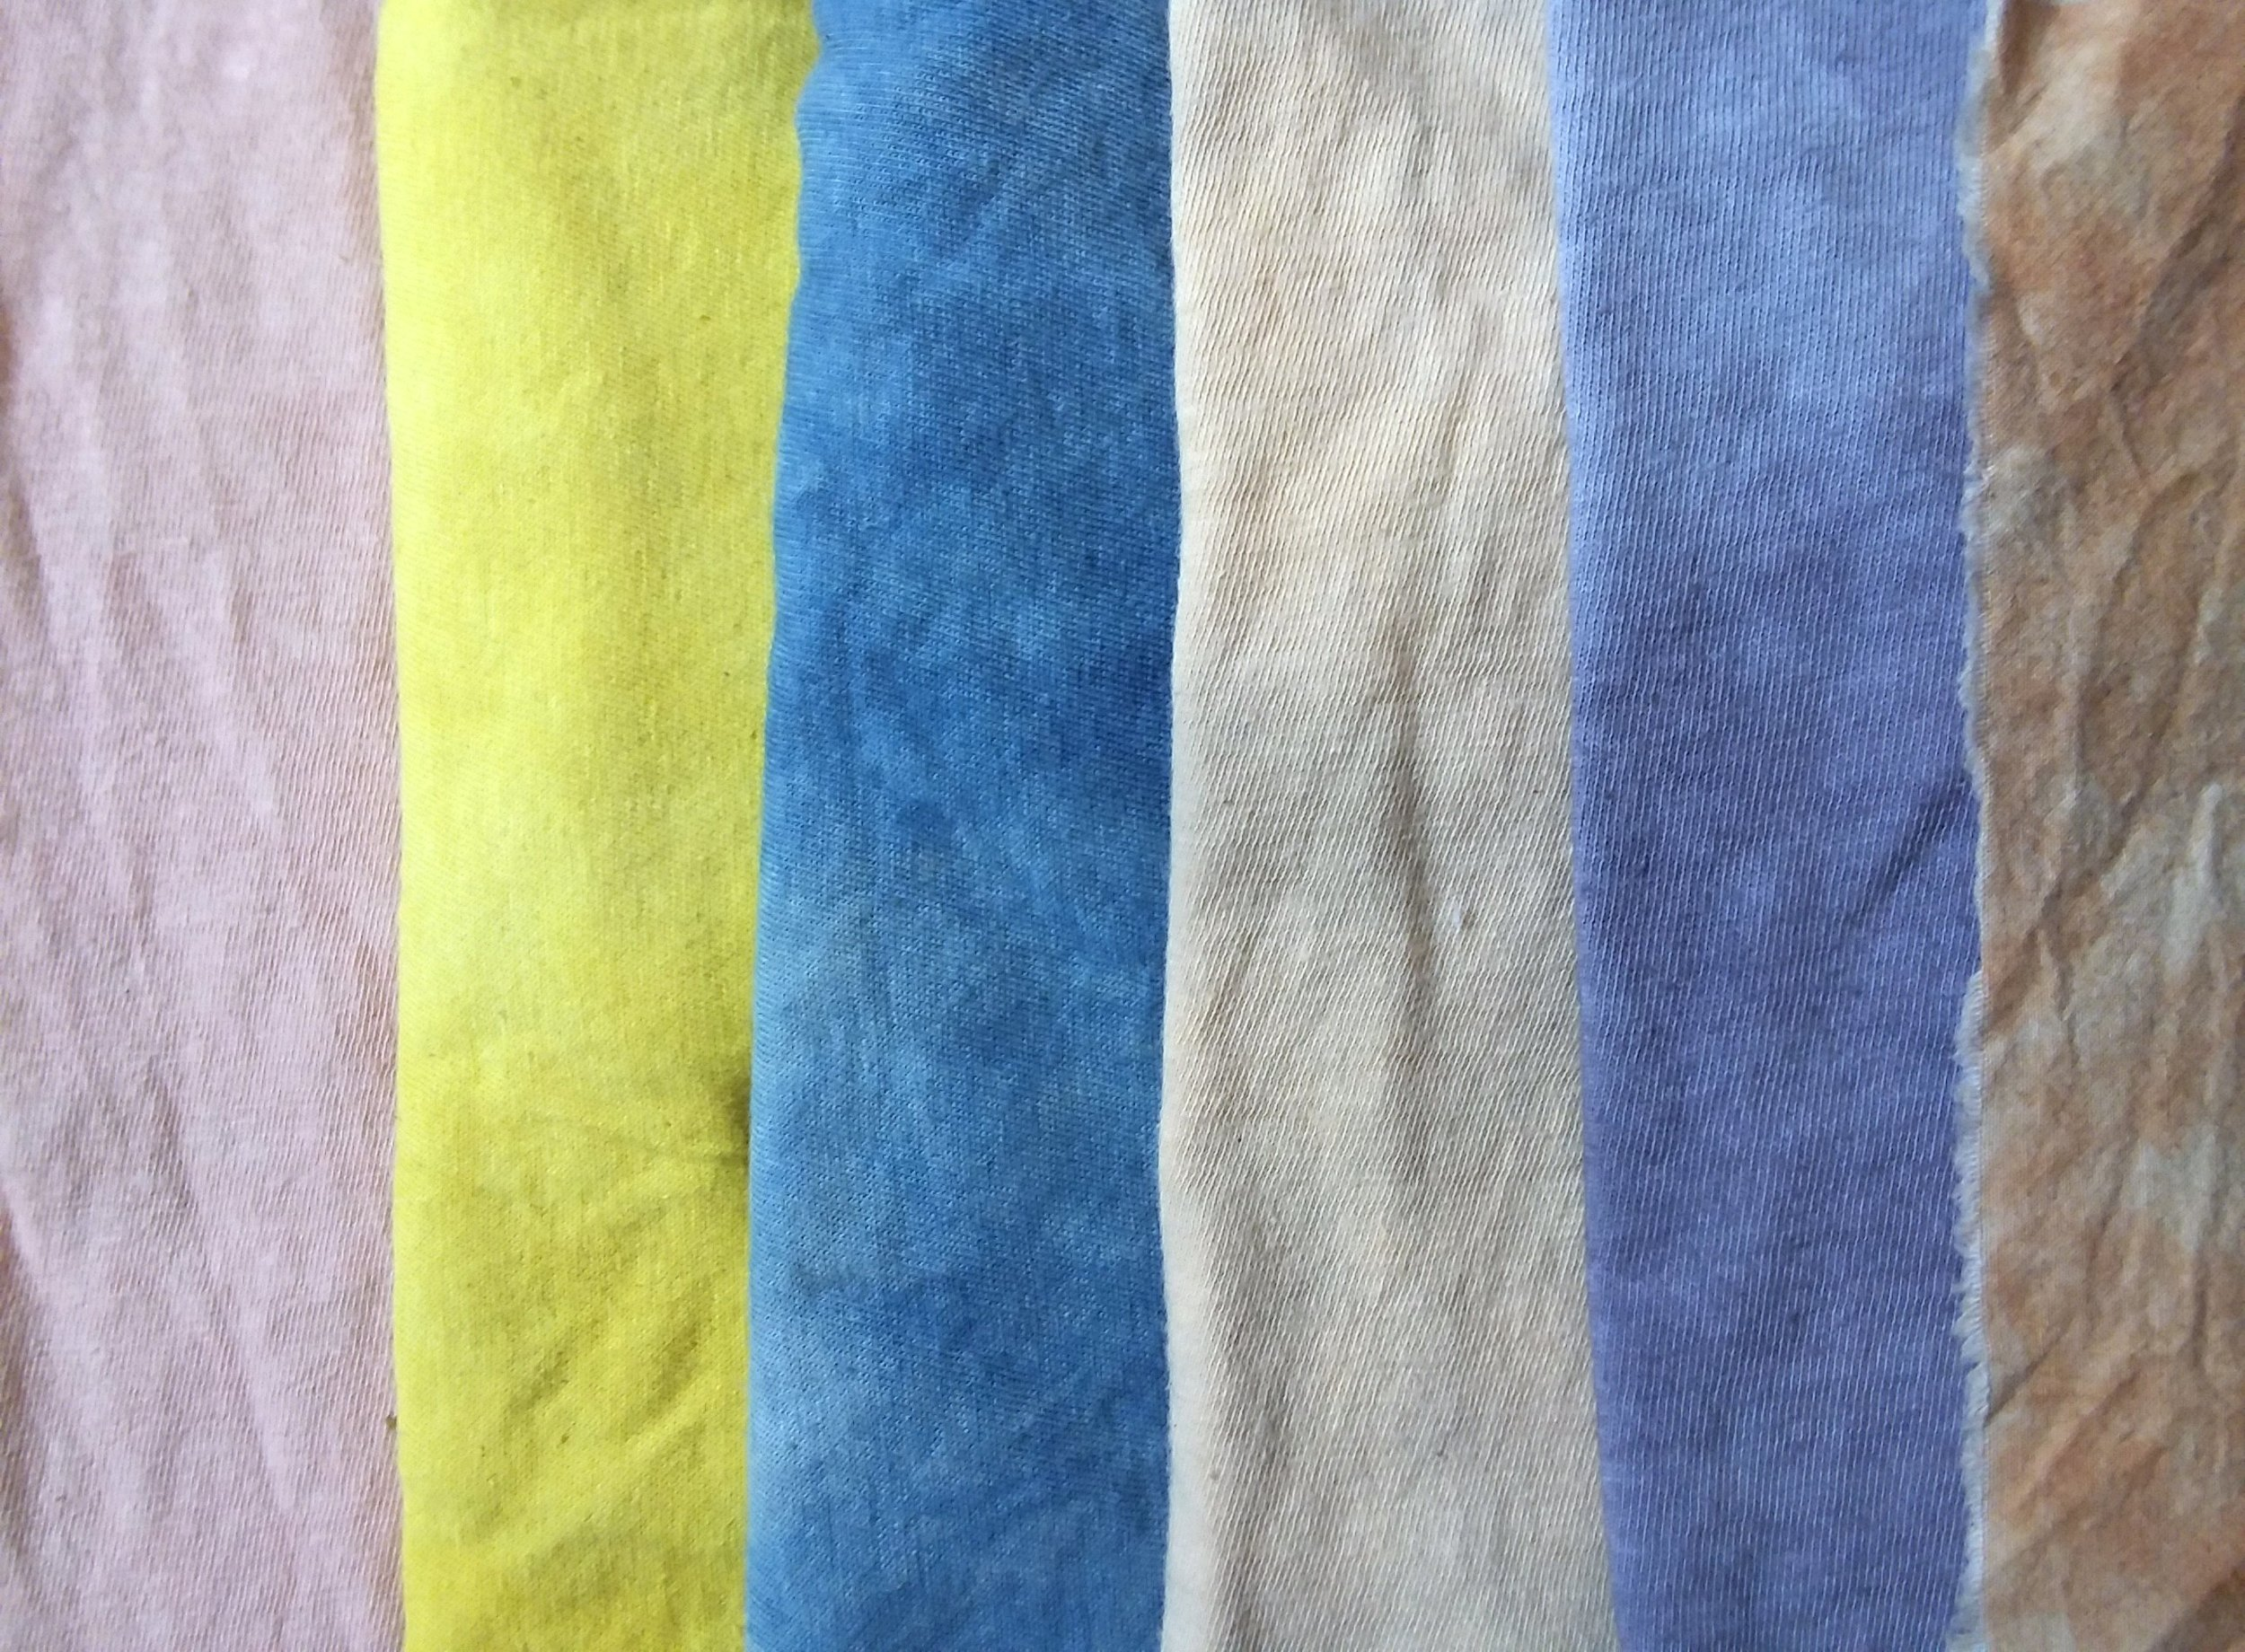 The Colour Lab - The Colour Lab is Casa De Coco's.initiative to waste less, educate consumers, and serve the community. Textiles are given second life by turning them into a new shade!Find out more or request an over dye here.